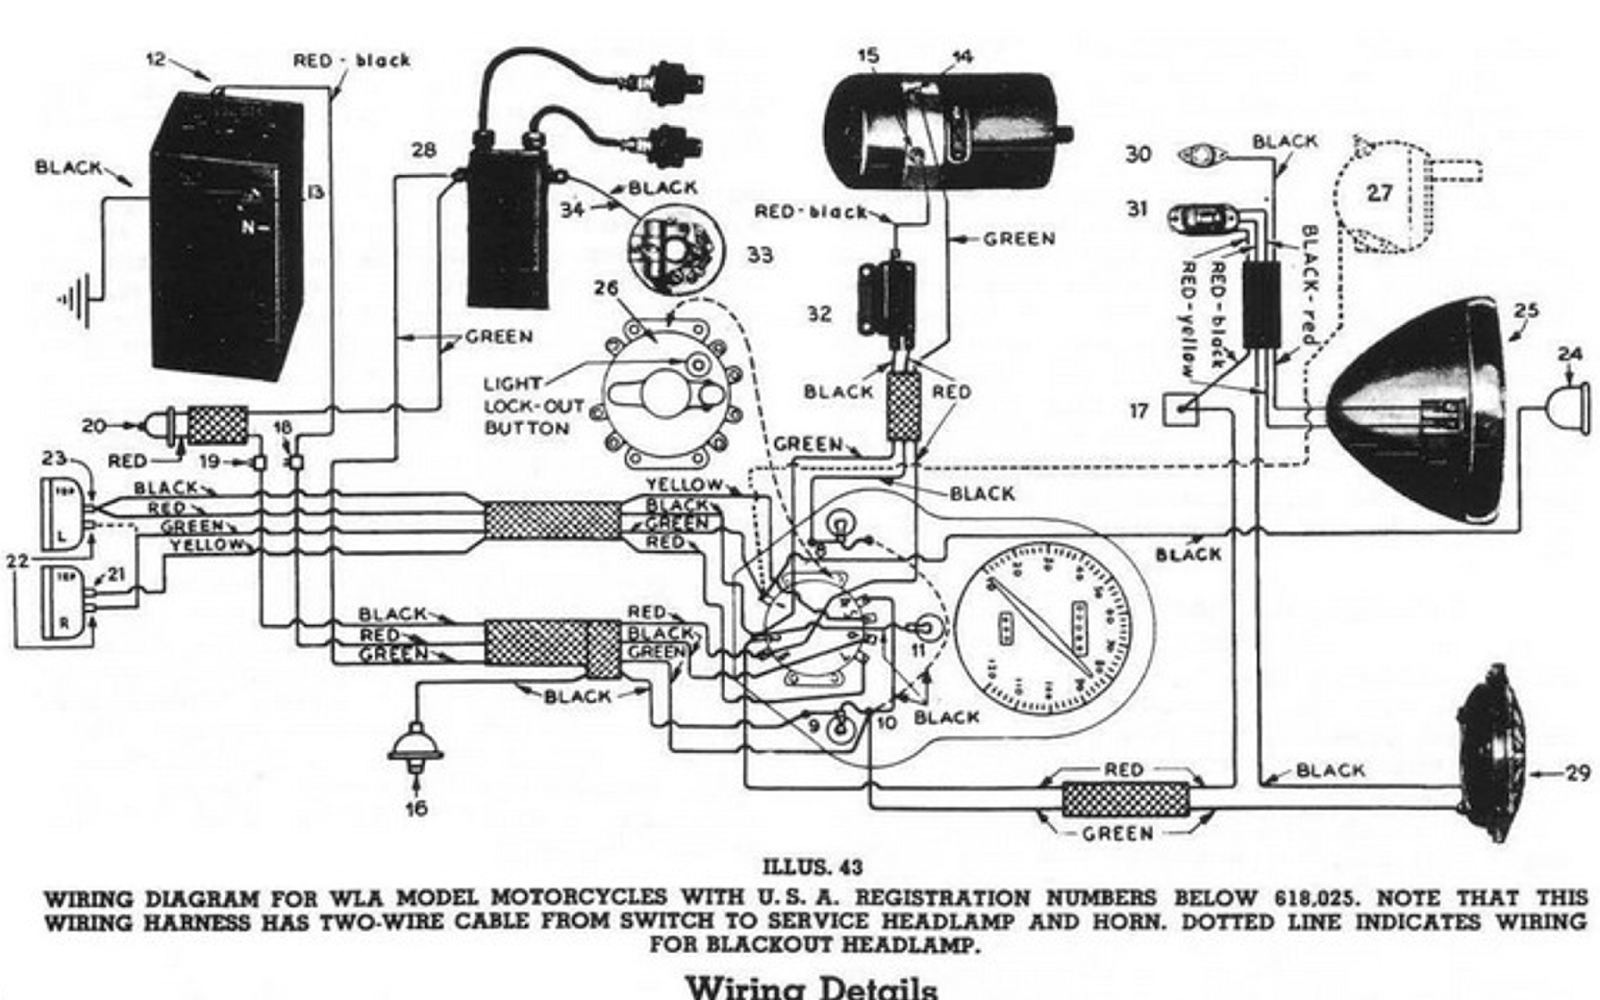 Harley 45 Wiring Diagram Archive Of Automotive 1941 Dodge Truck Davidson Wl Restoration Re The Rh Harley1941wl Blogspot Com